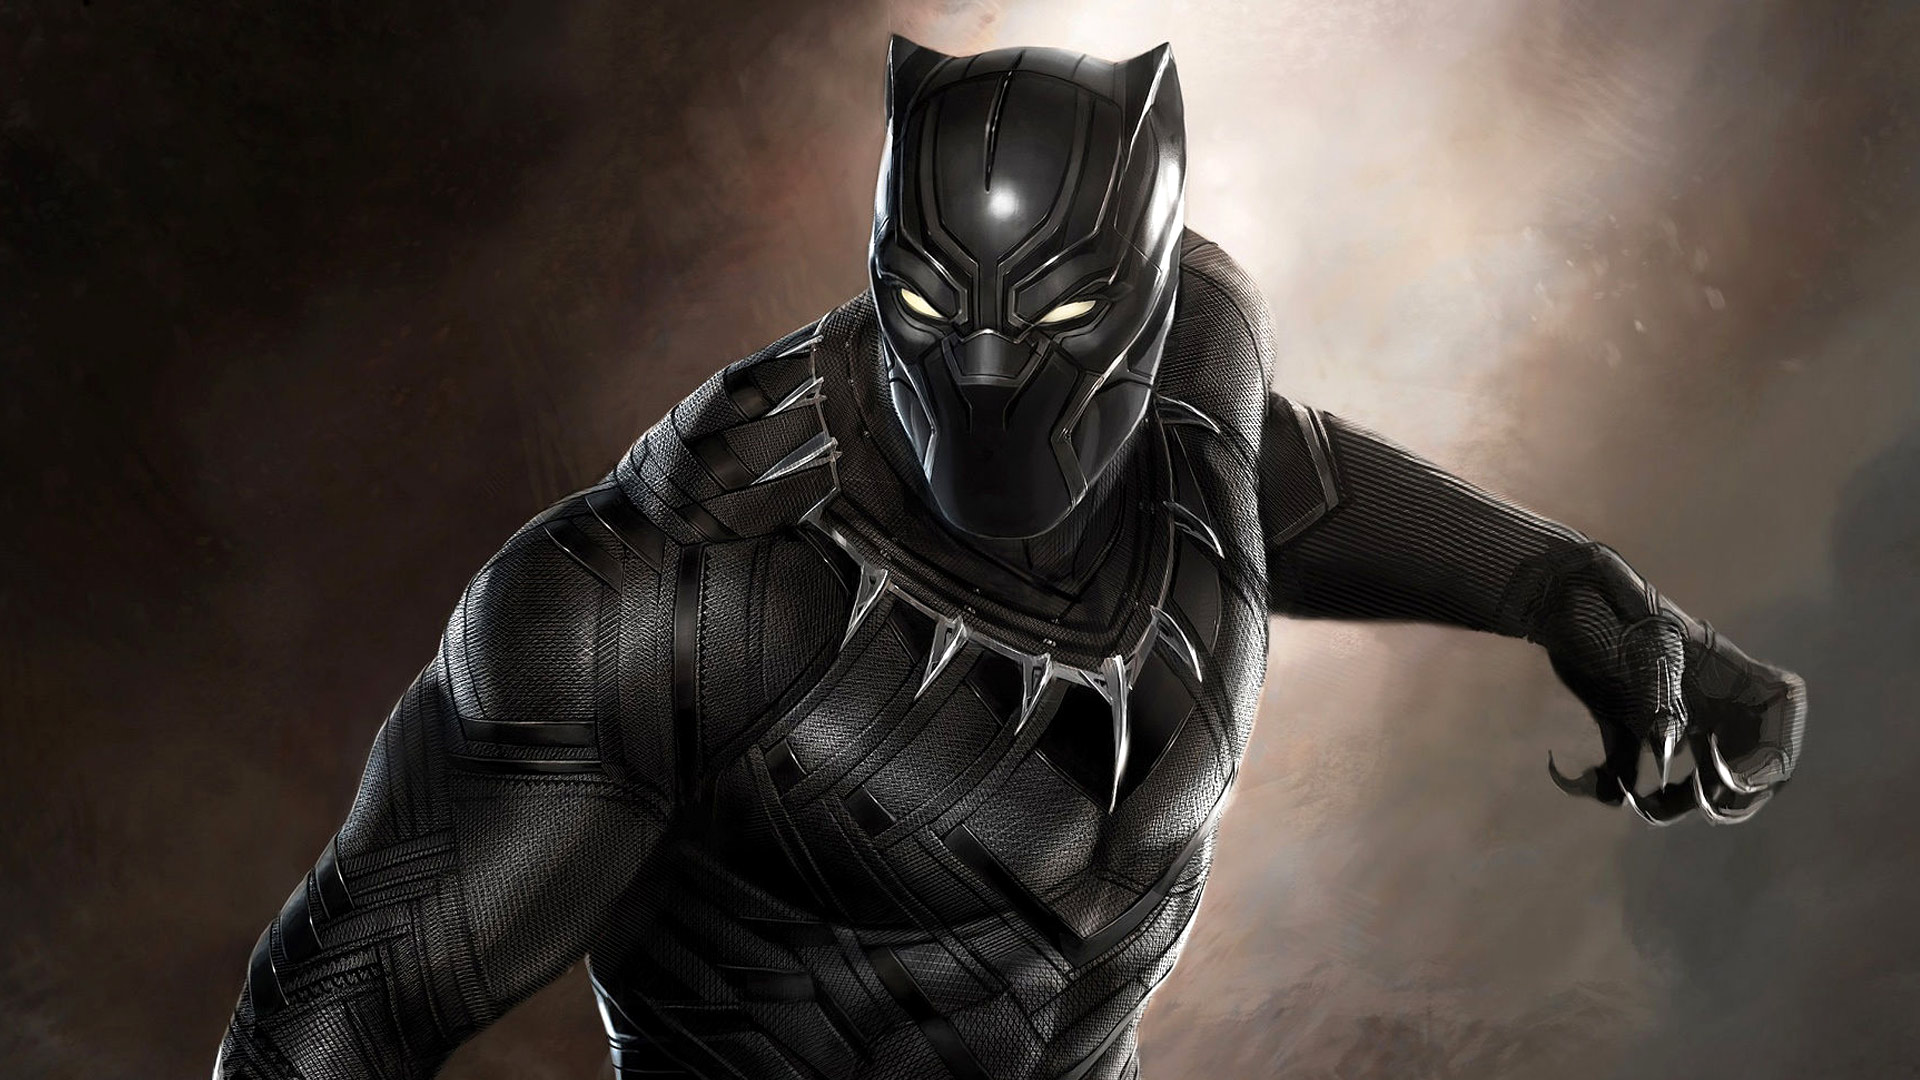 black-panther-wallpaper-20 jpg